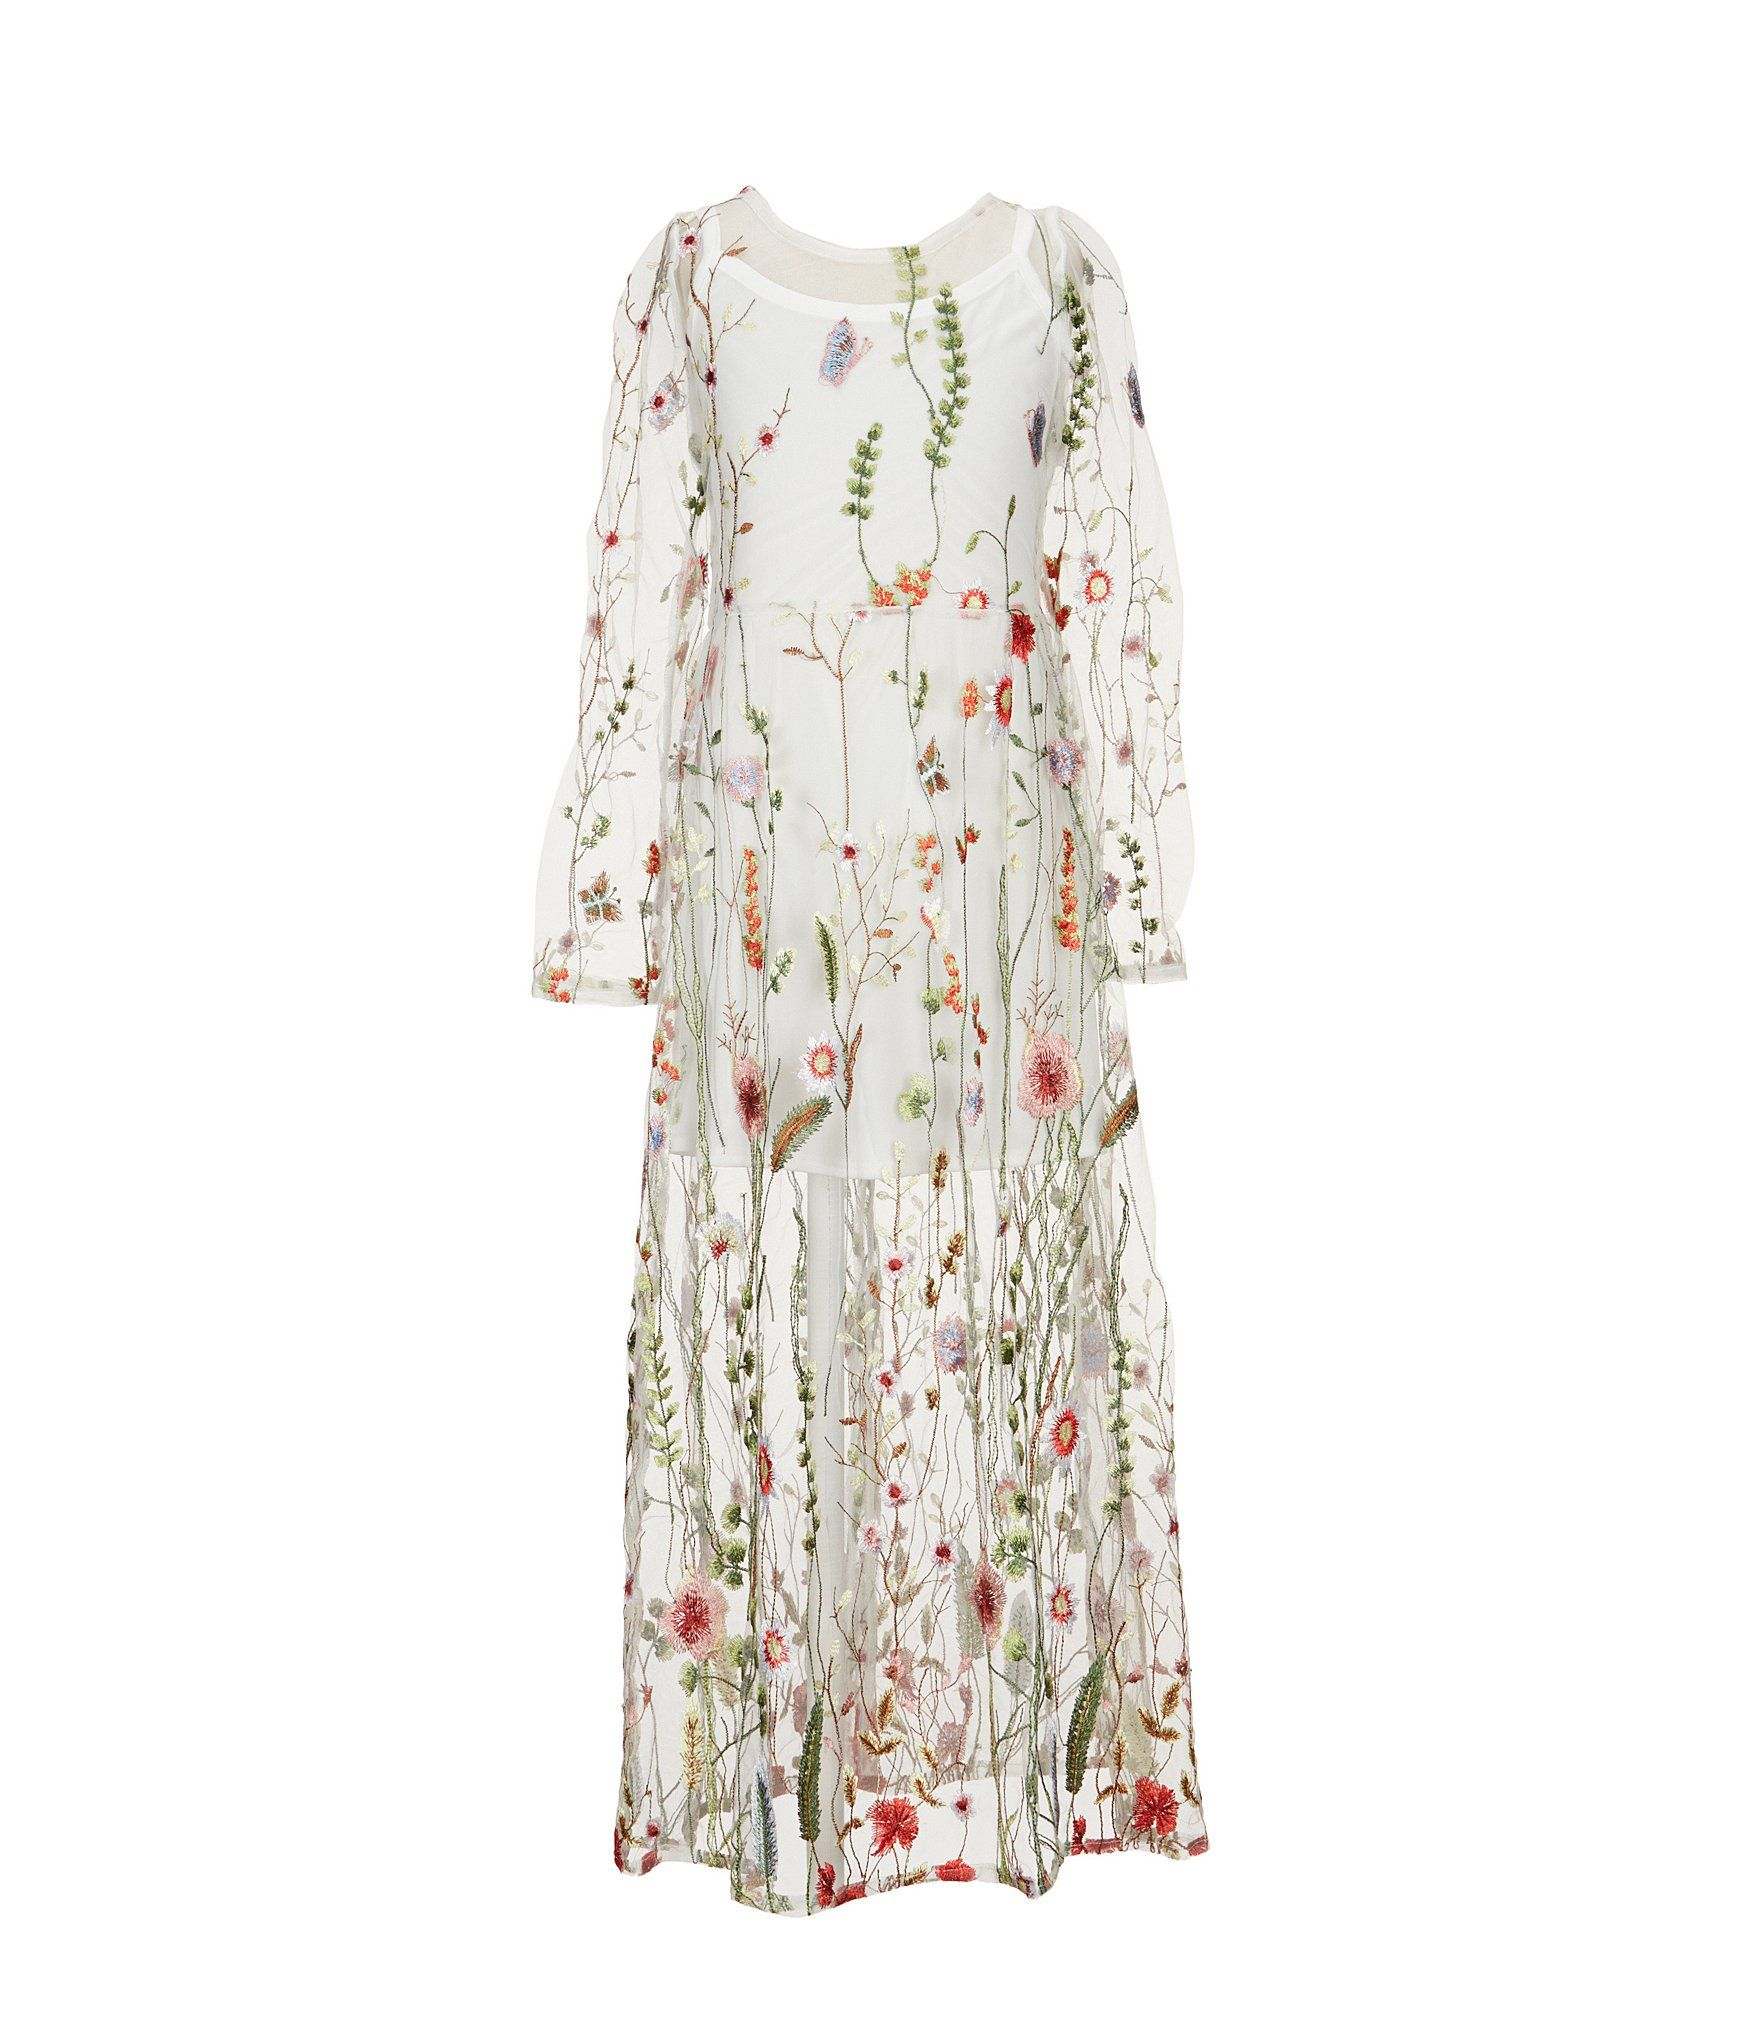 57bba59e539 Shop for Rare Editions Big Girls 7-16 Floral-Embroidered Mesh Maxi Dress at  Dillards.com. Visit Dillards.com to find clothing